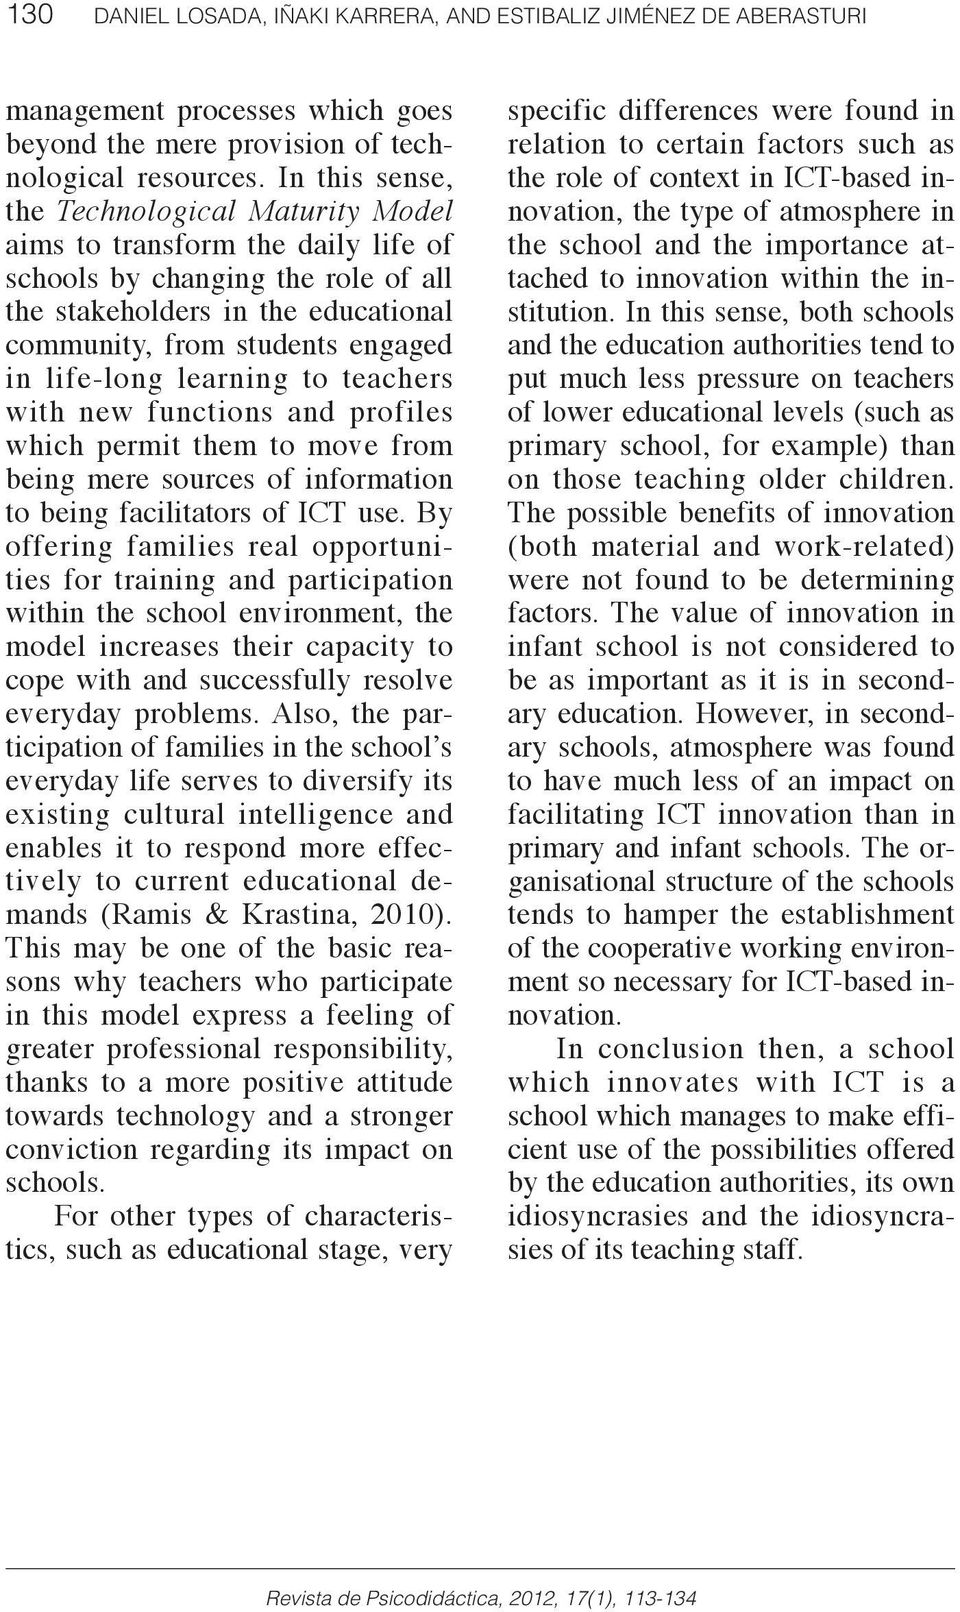 life-long learning to teachers with new functions and profiles which permit them to move from being mere sources of information to being facilitators of ICT use.